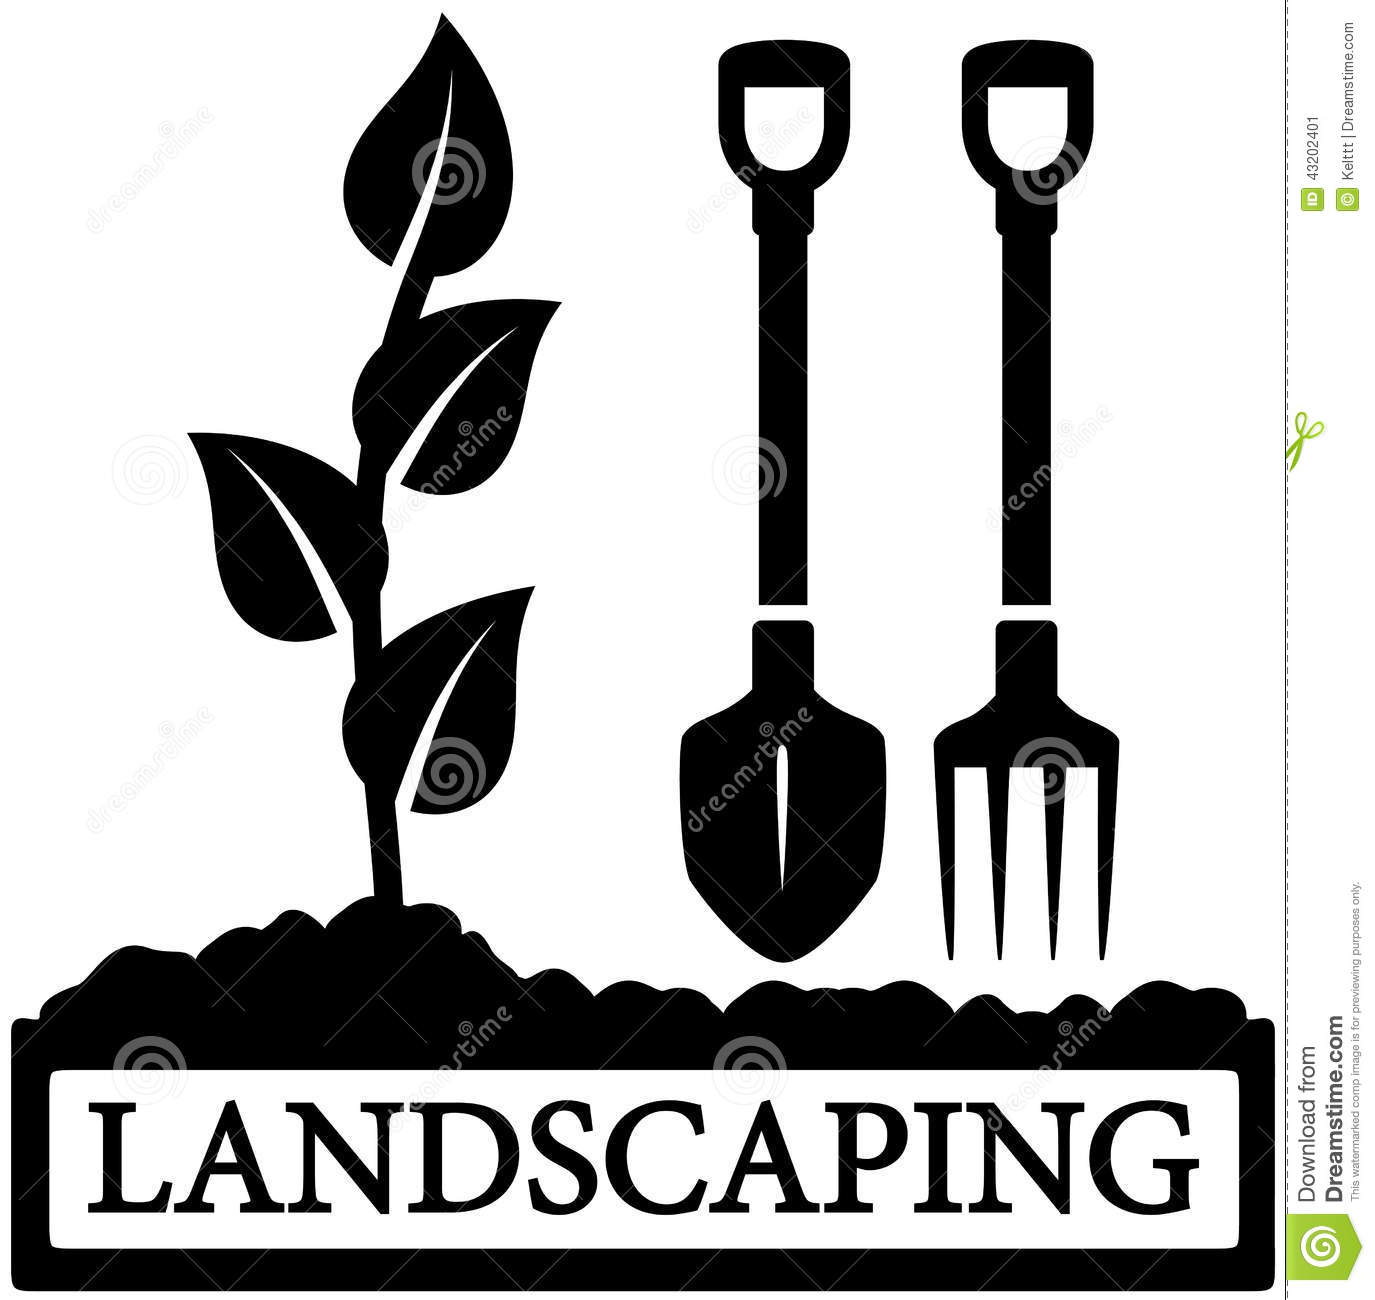 Landscaping icon with sprout and gardening tools stock for Gardening tools vector